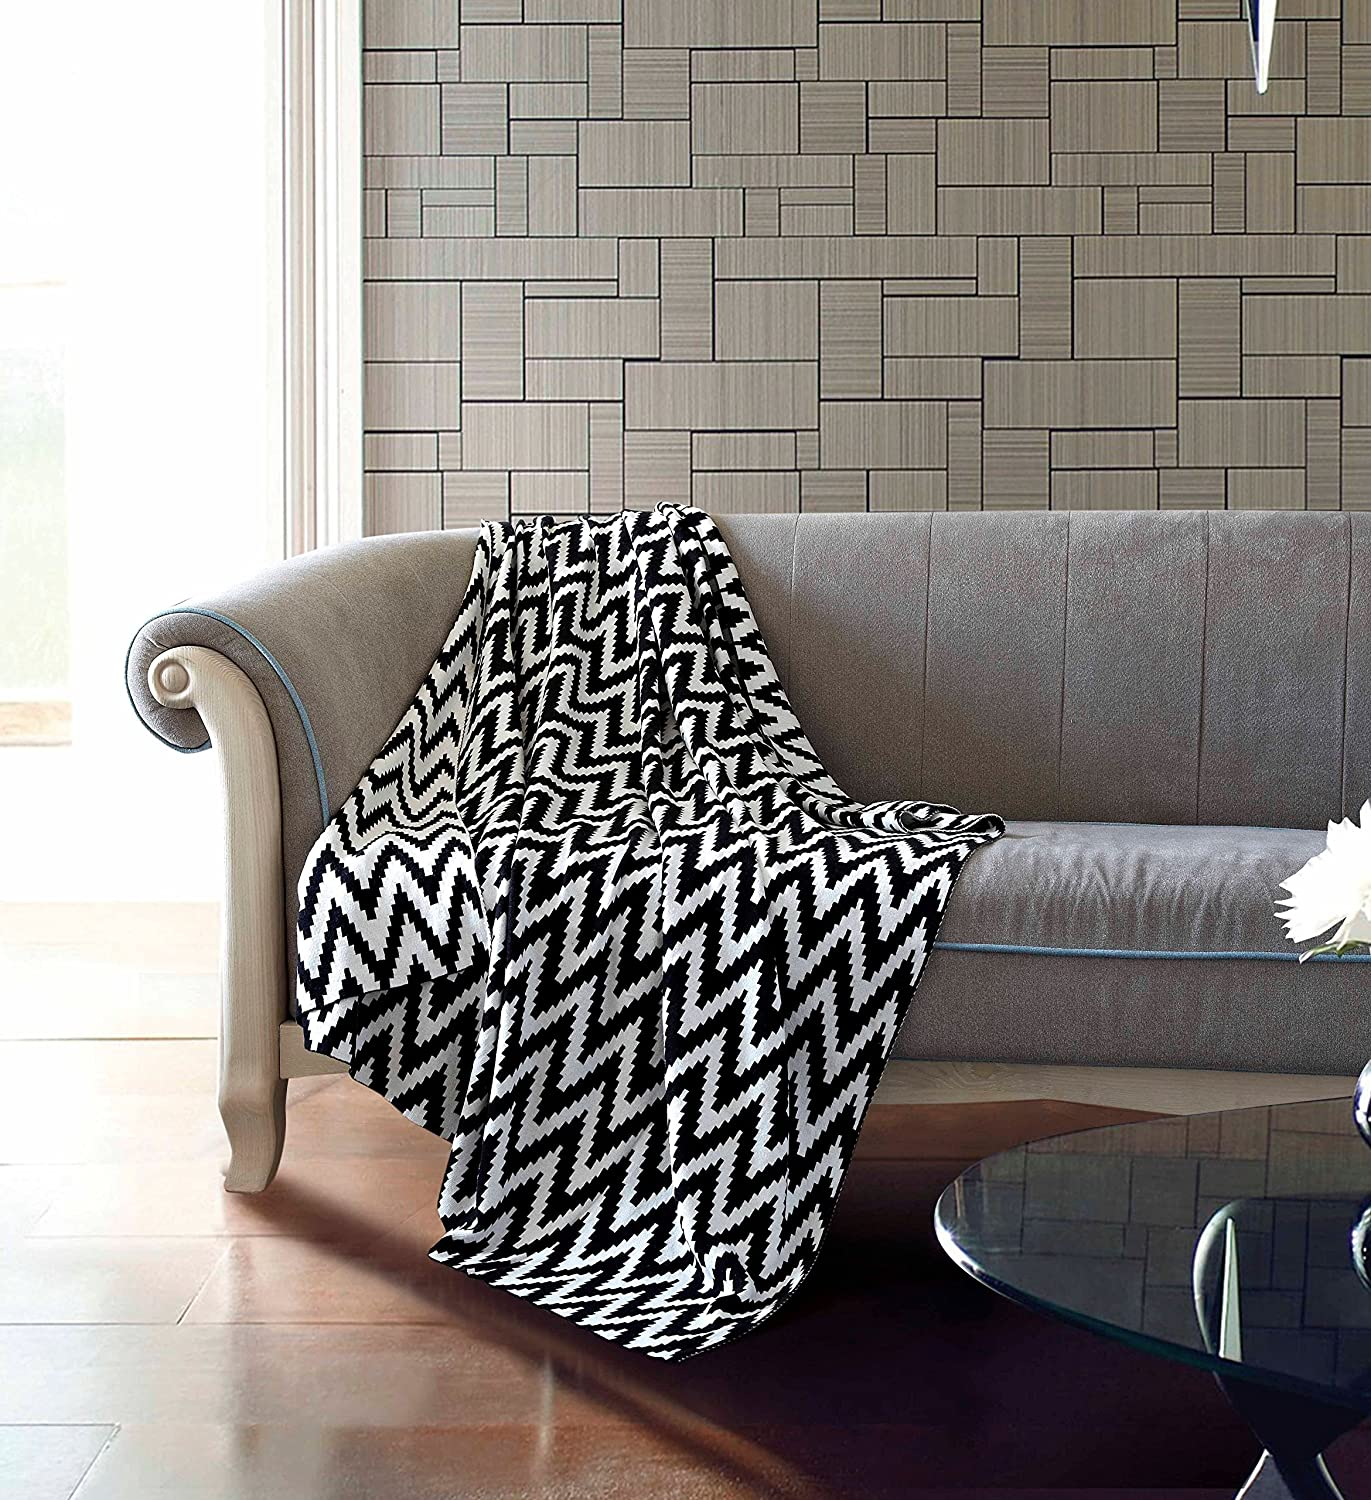 Ultra Soft Cotton Couch or Crispy Chevron 50  x 60  Throw Blanket